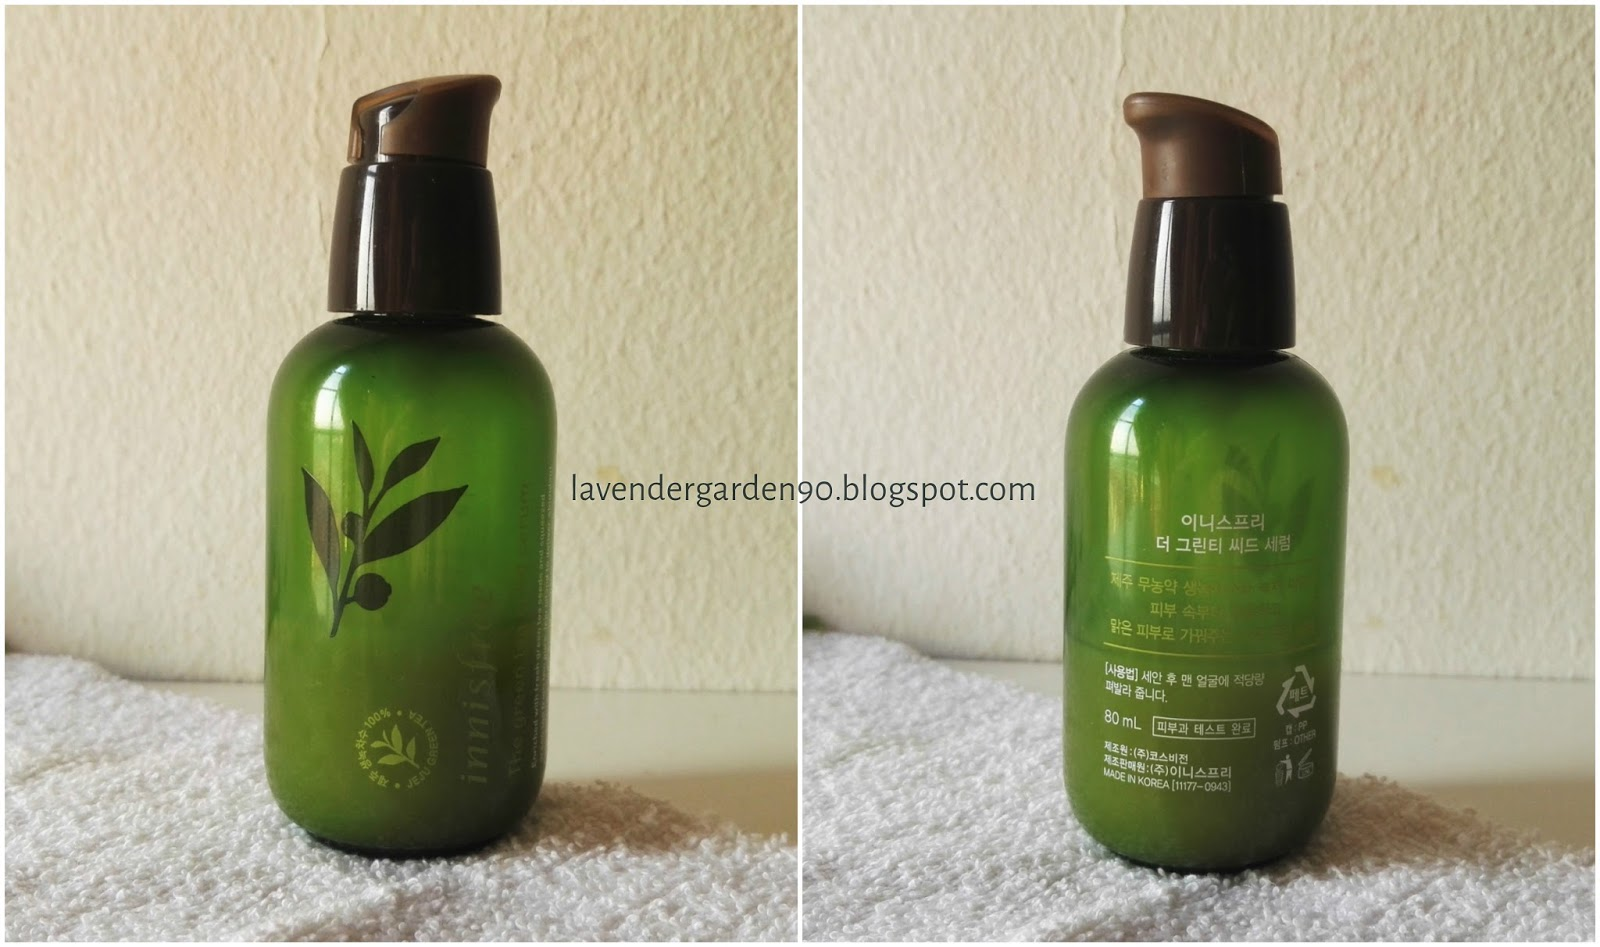 Carolyns Lavender Garden Review Innisfree The Green Tea Seed Serum 80ml Main Ingredients Are 759 Extract And 208mg Oil Rest All Texture Solvents Emulsifiers Fragrance